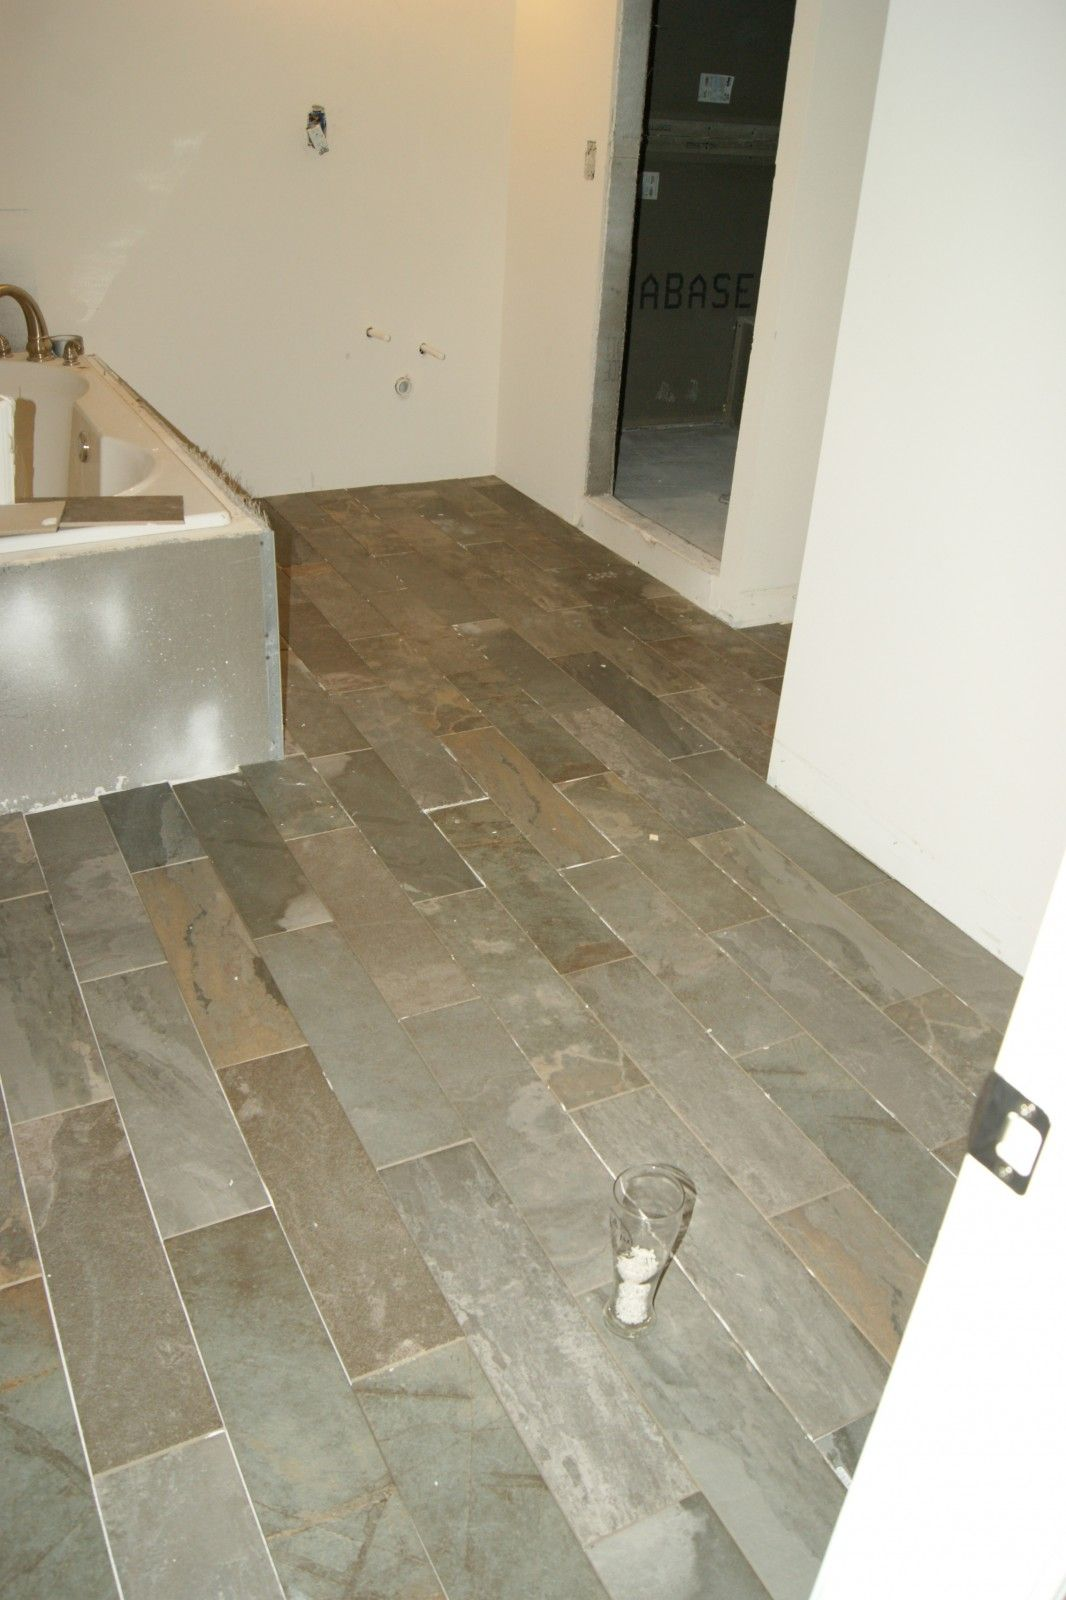 Bathroom floors grout tile flooring and bath ideas bathroom floors restroom remodelremoving grout from tilehow doublecrazyfo Images